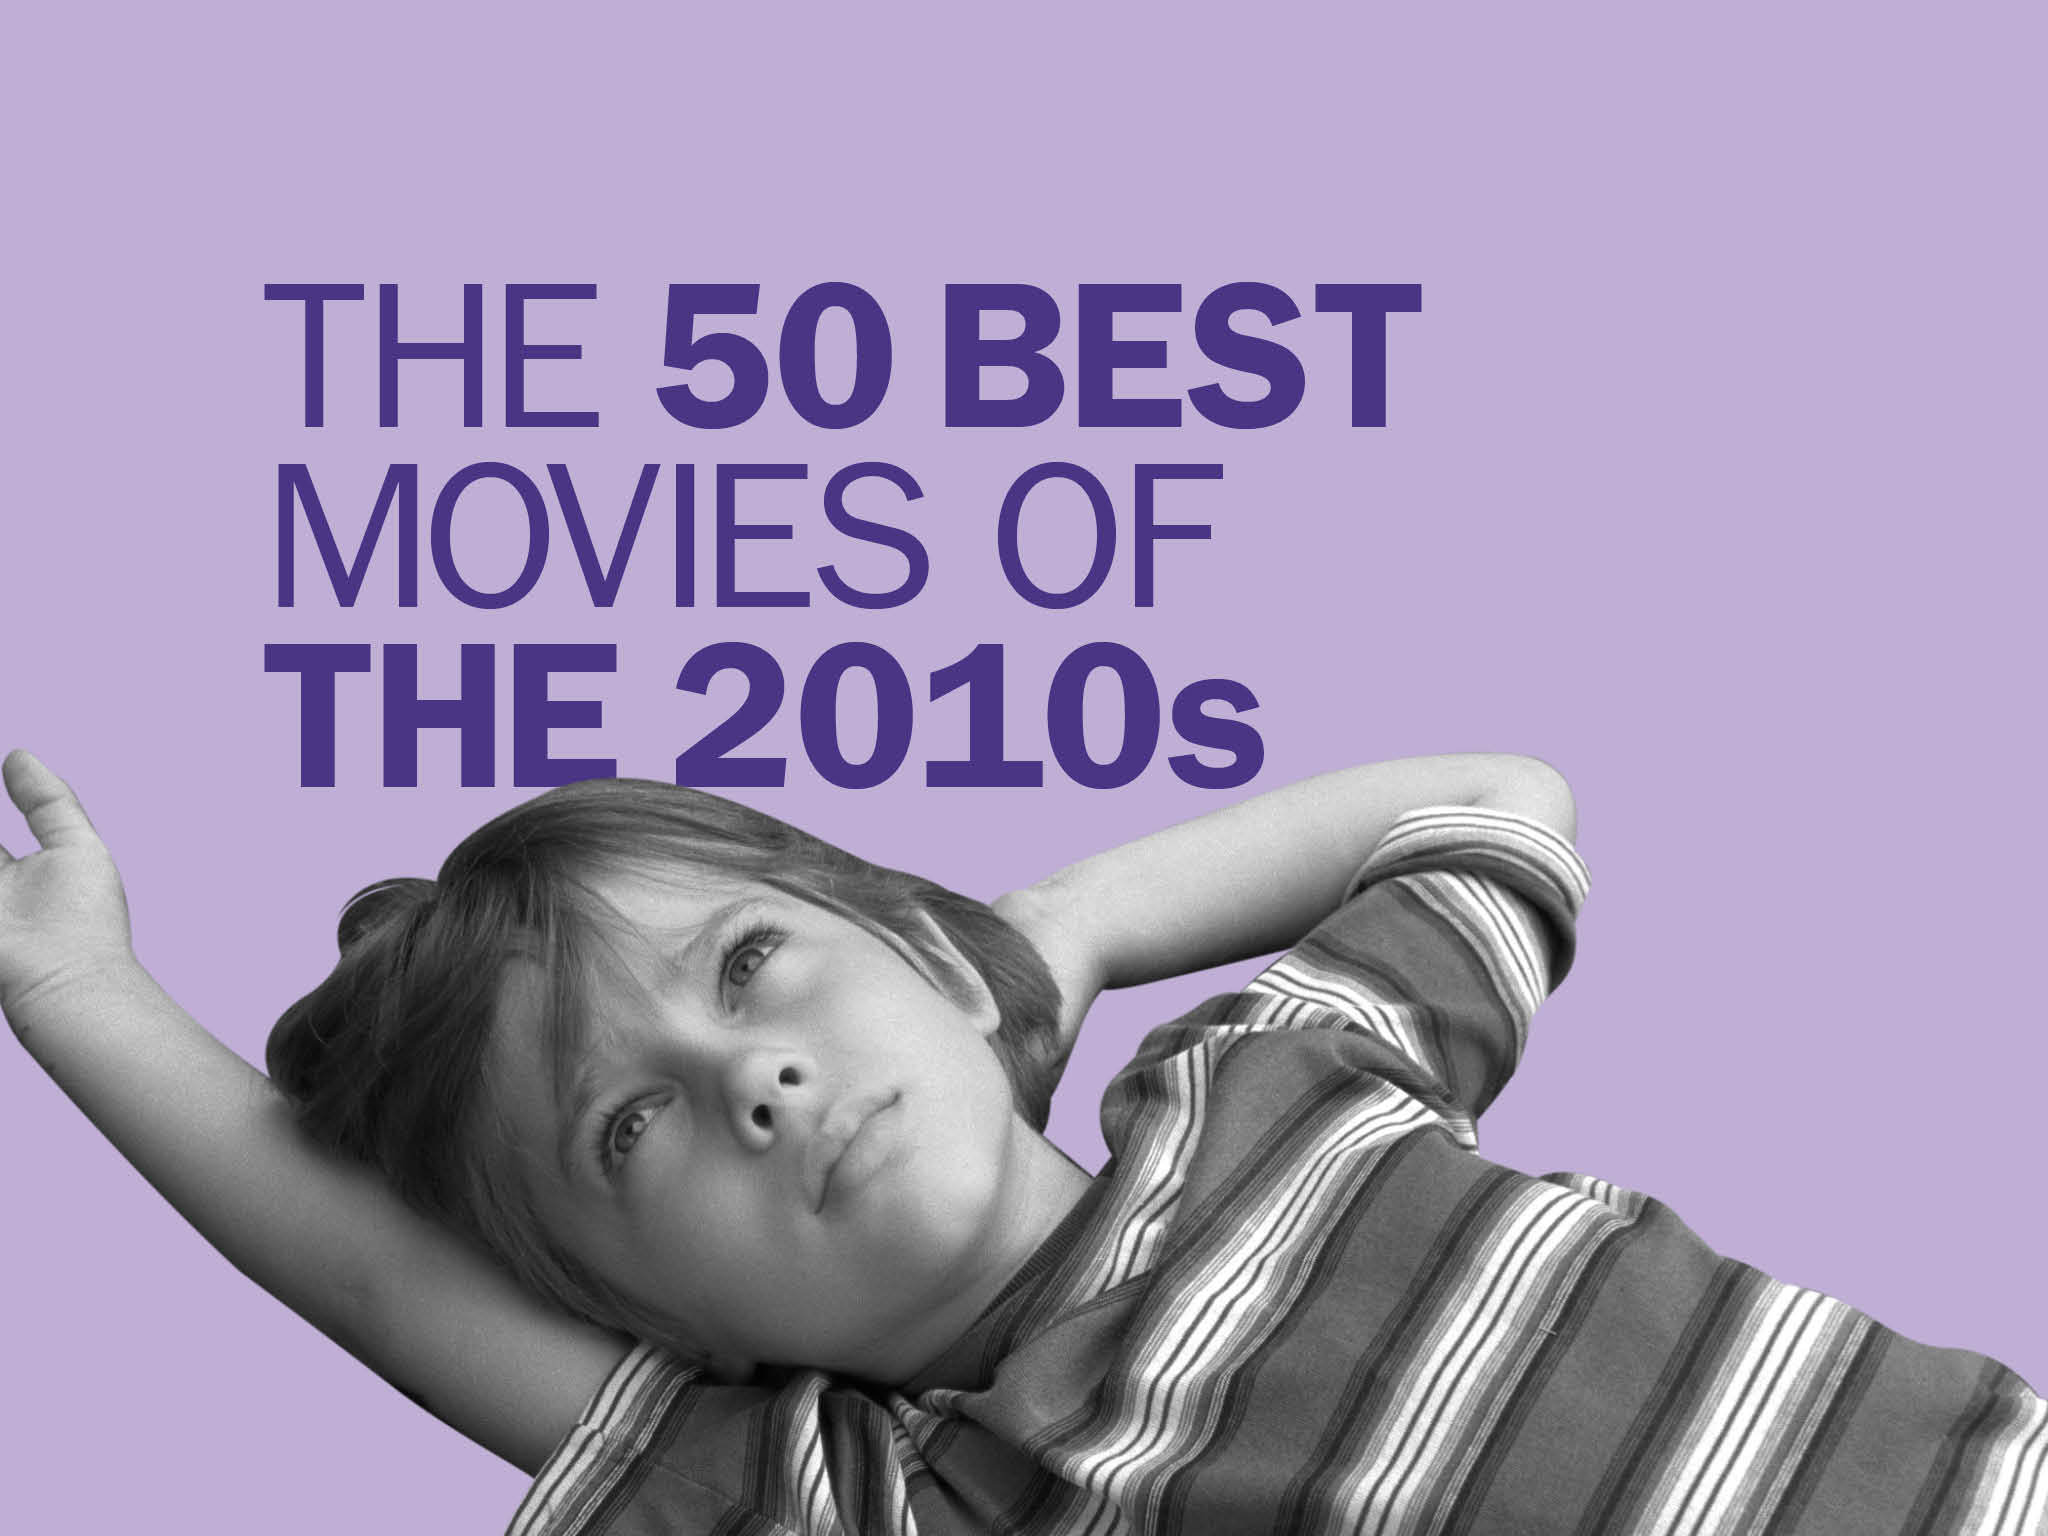 The 50 best movies of the 2010s